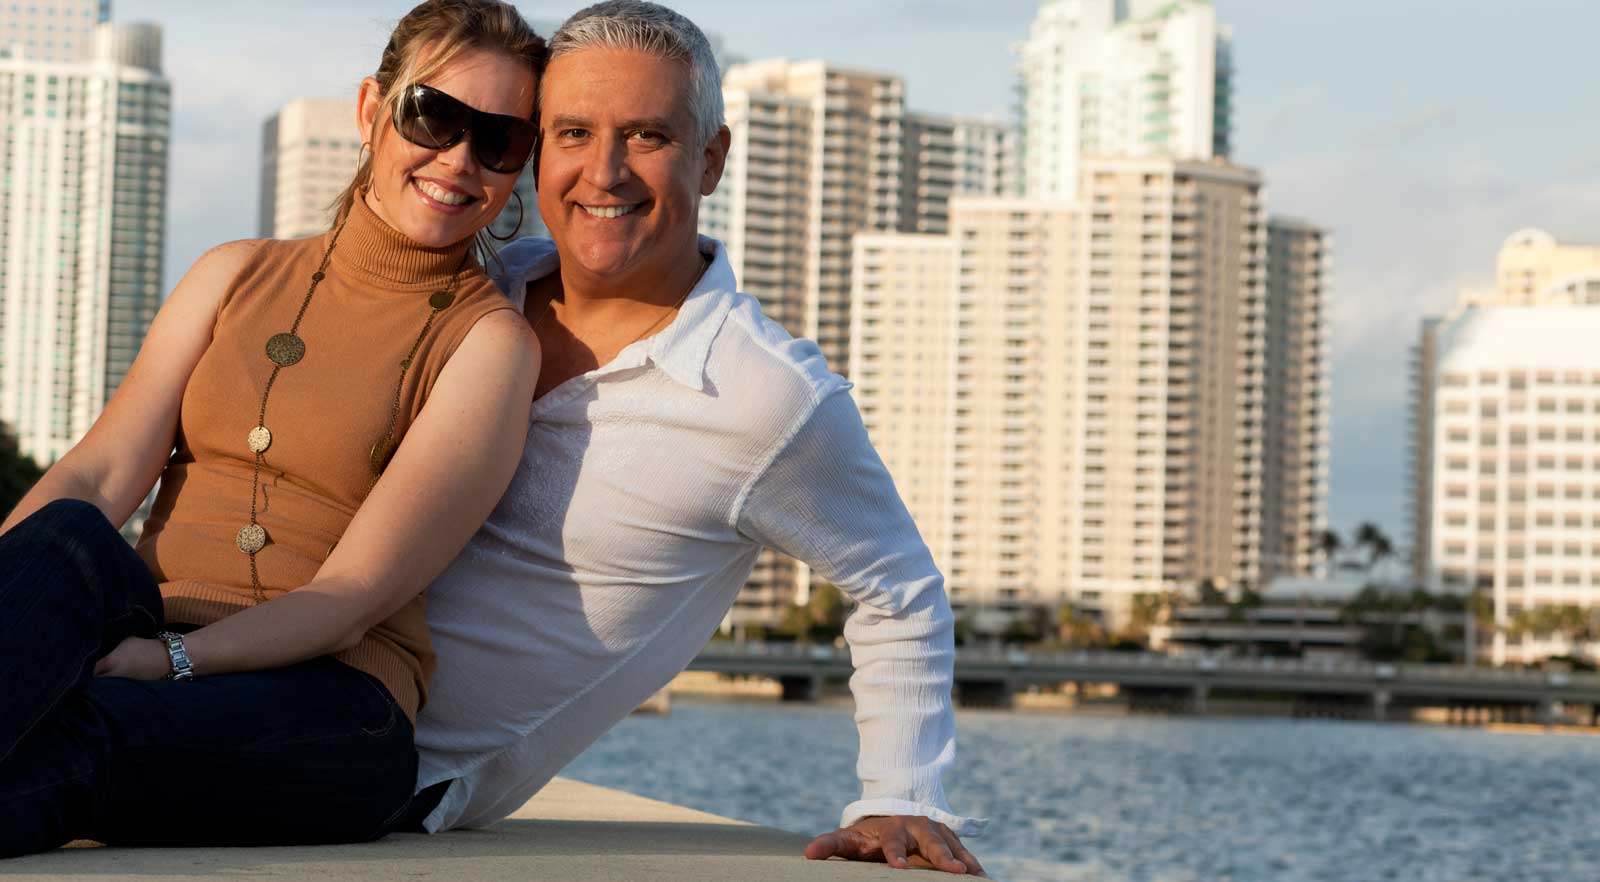 micaville singles over 50 Shropshire mature online dating website for single men and women over 40,  over 50, over 60 in shropshire and the local area uk mature dating, shropshire.